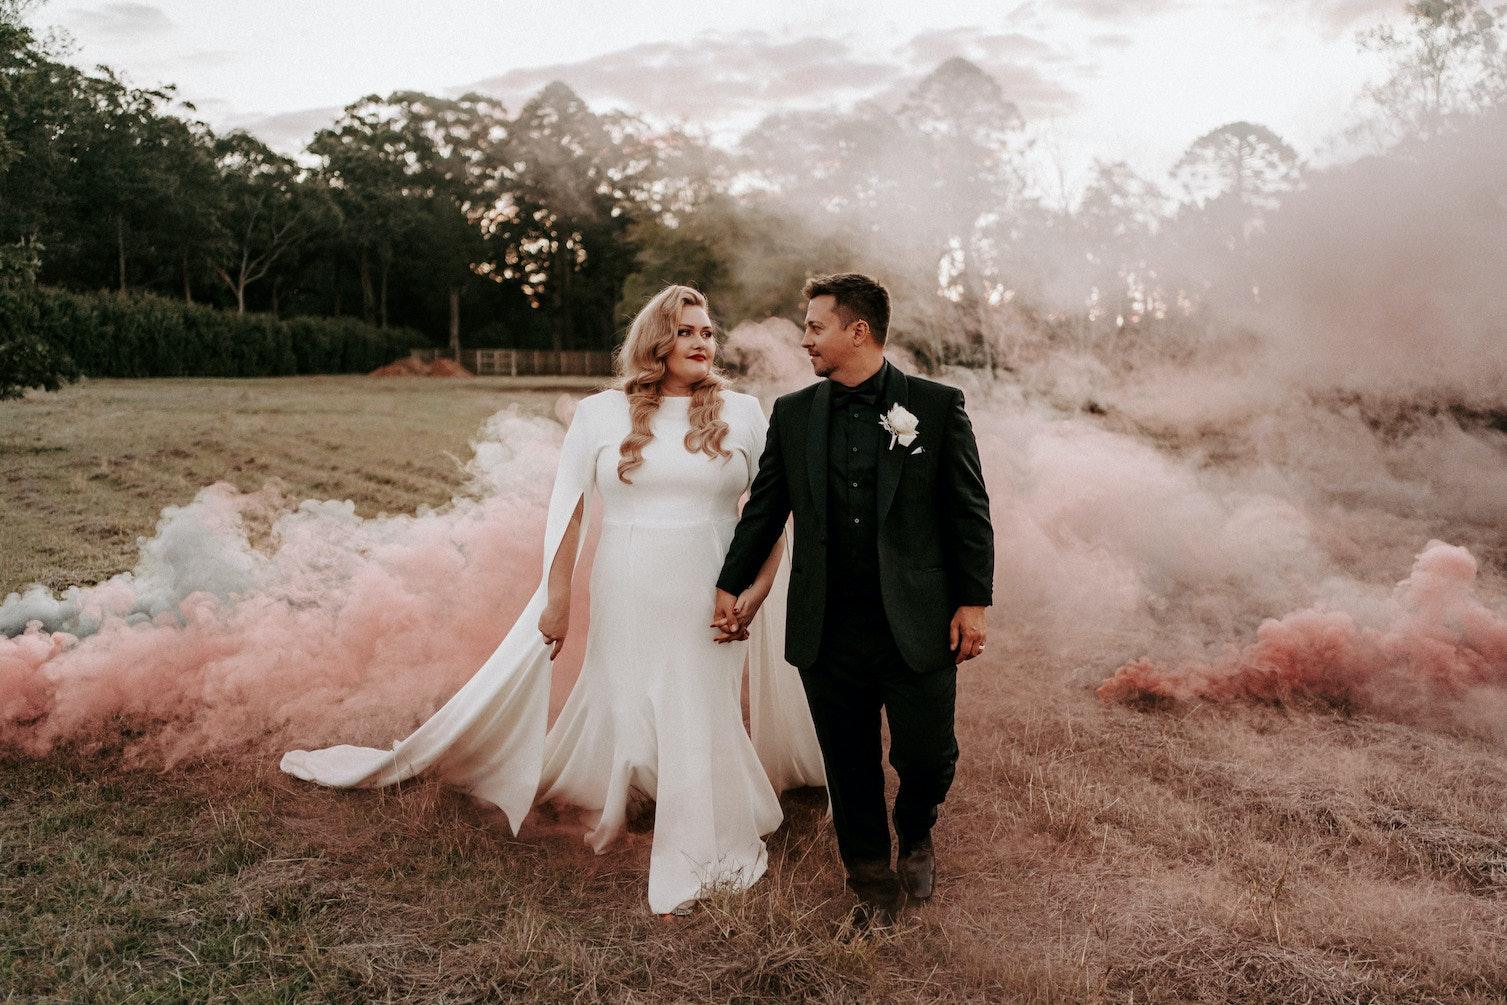 Bride and groom walking along with smoke in the background